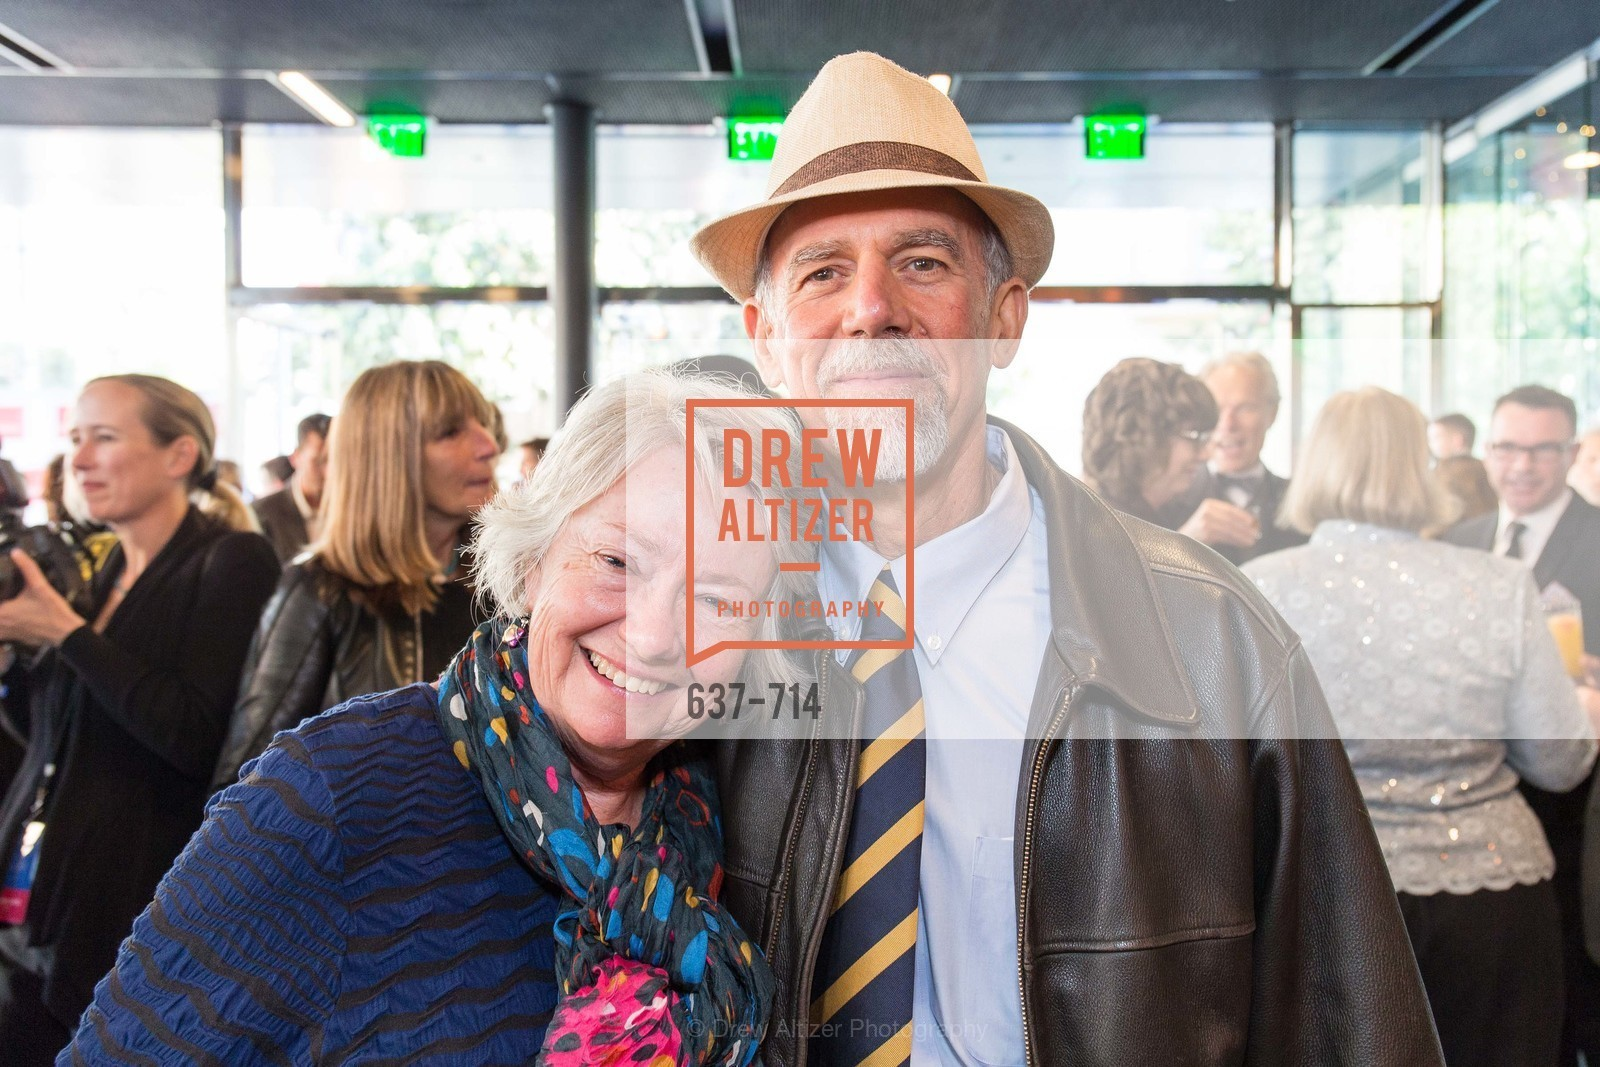 Top Picks, SFJAZZ Gala 2015 Honors Joni Mitchell with Lifetime Achievement Award, May 9th, 2015, Photo,Drew Altizer, Drew Altizer Photography, full-service agency, private events, San Francisco photographer, photographer california